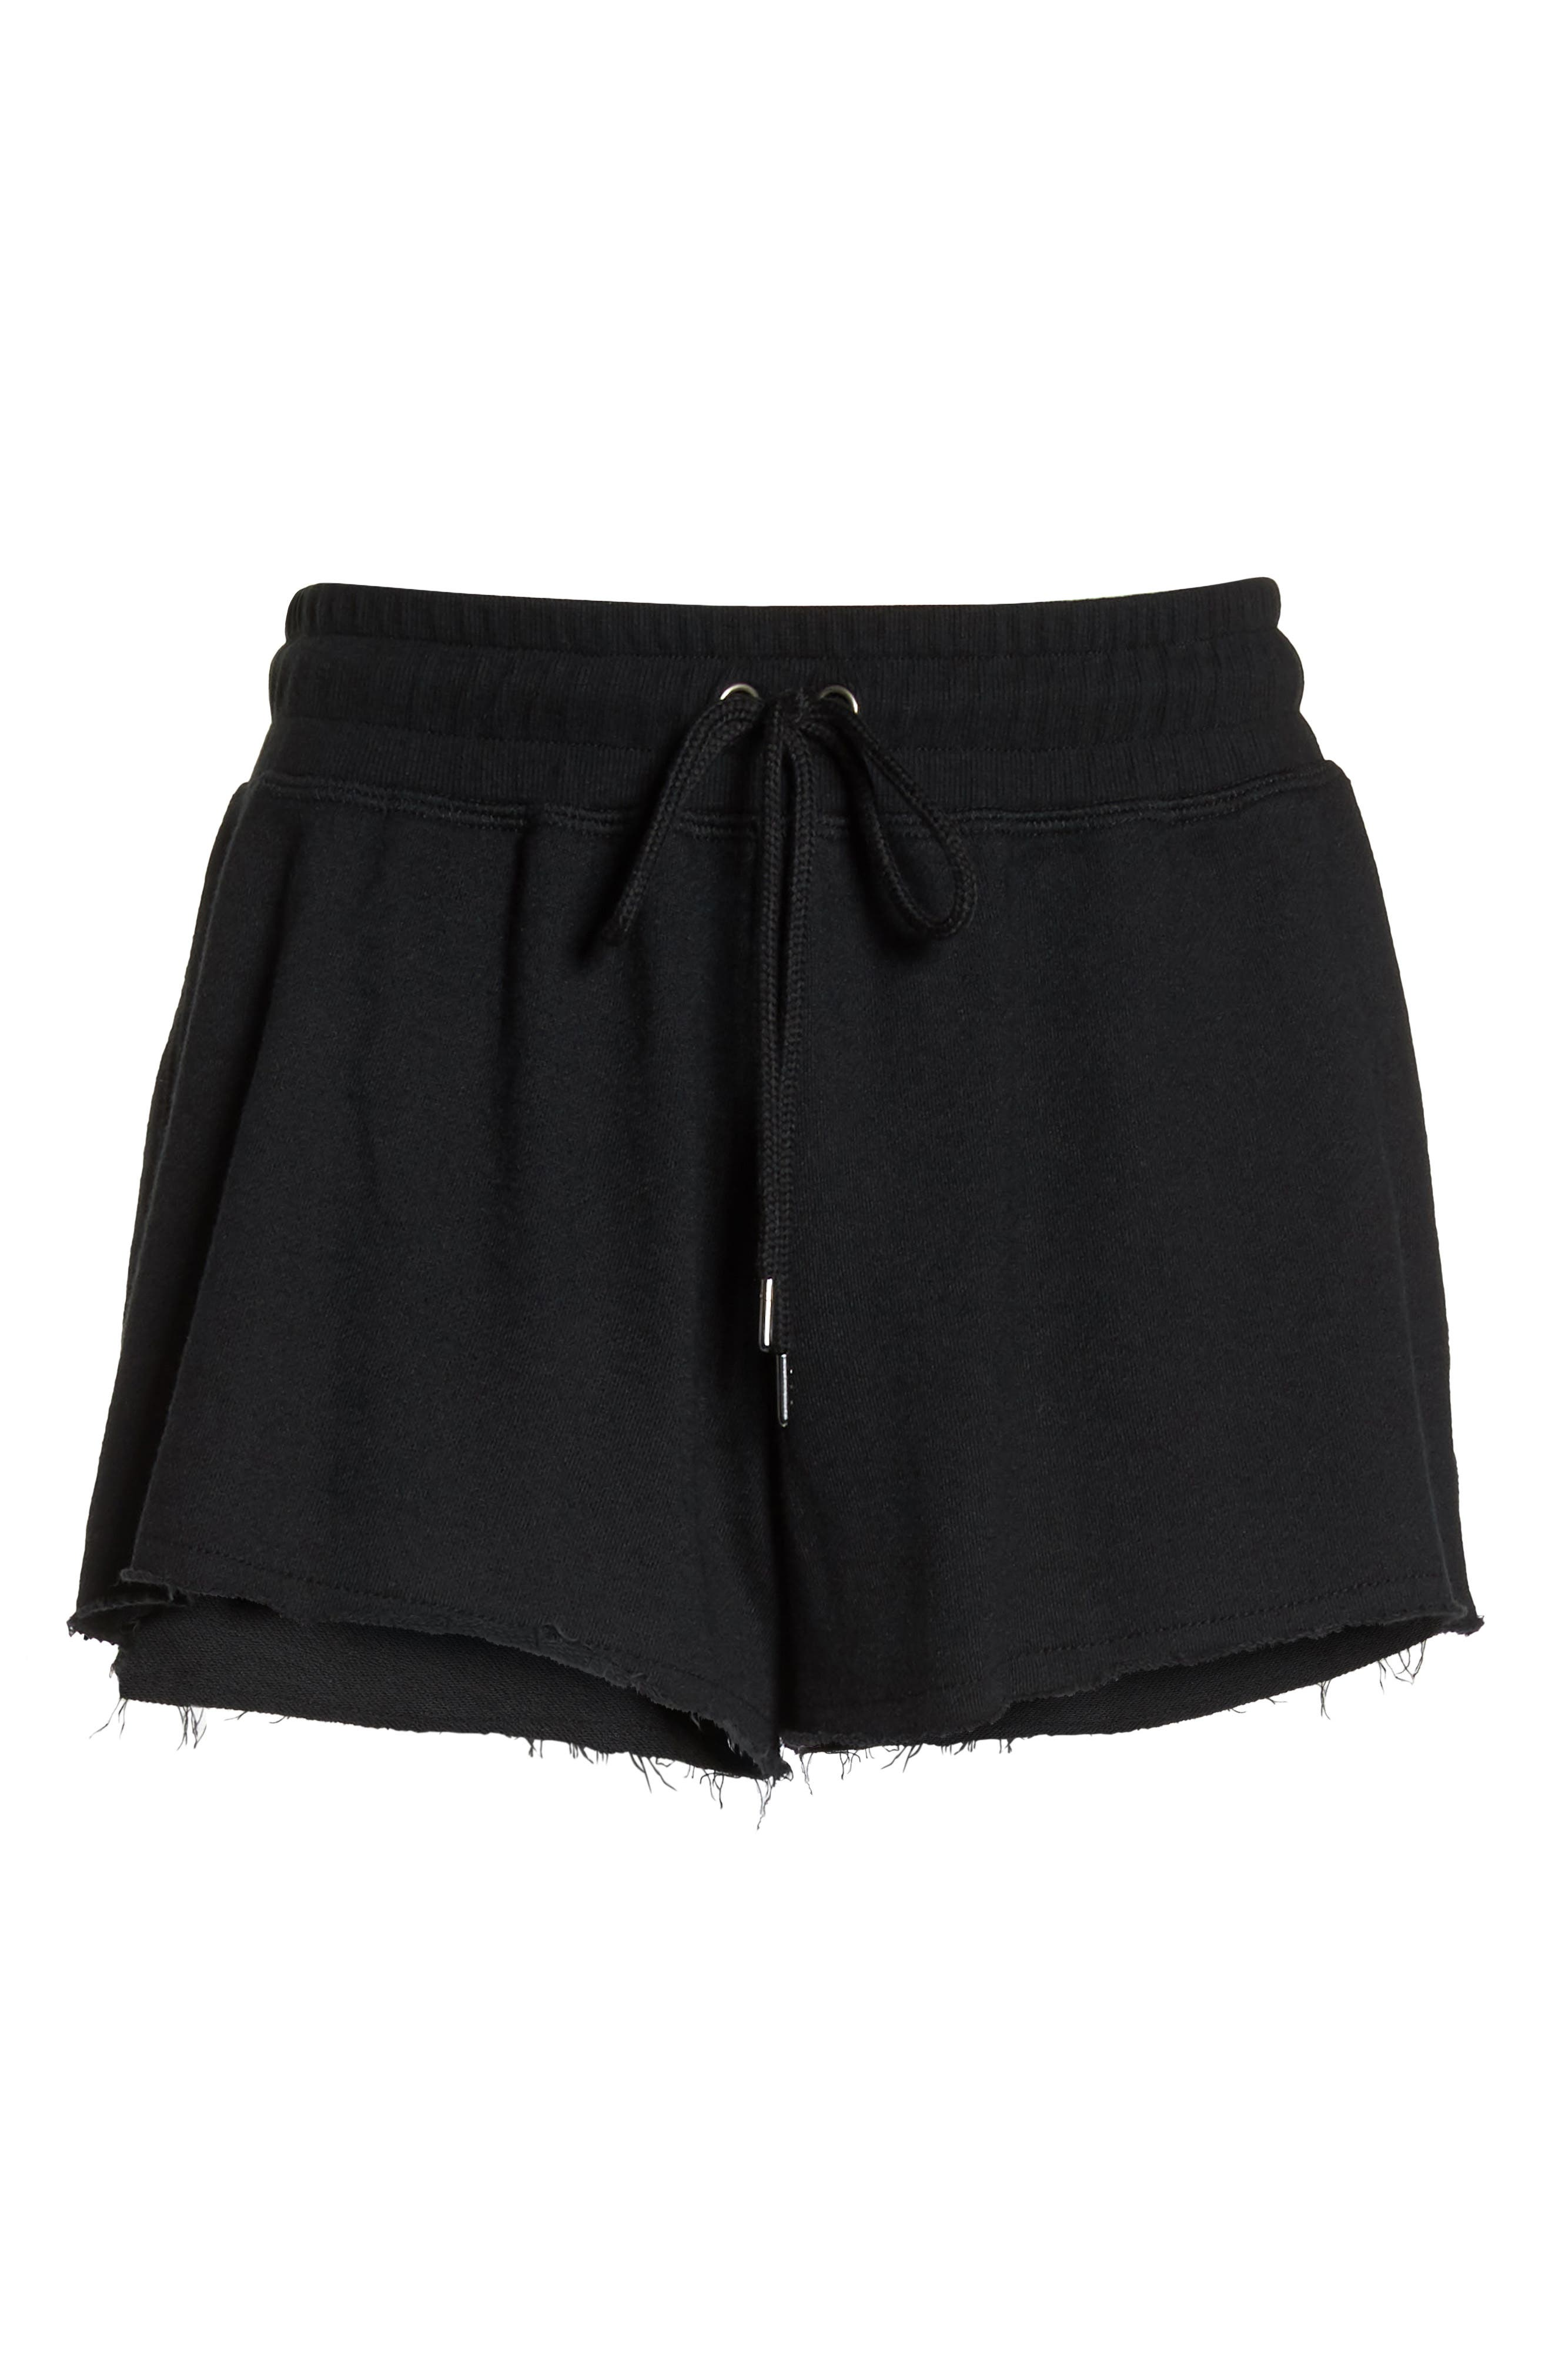 French Terry Sleep Shorts,                             Alternate thumbnail 6, color,                             FADED BLACK